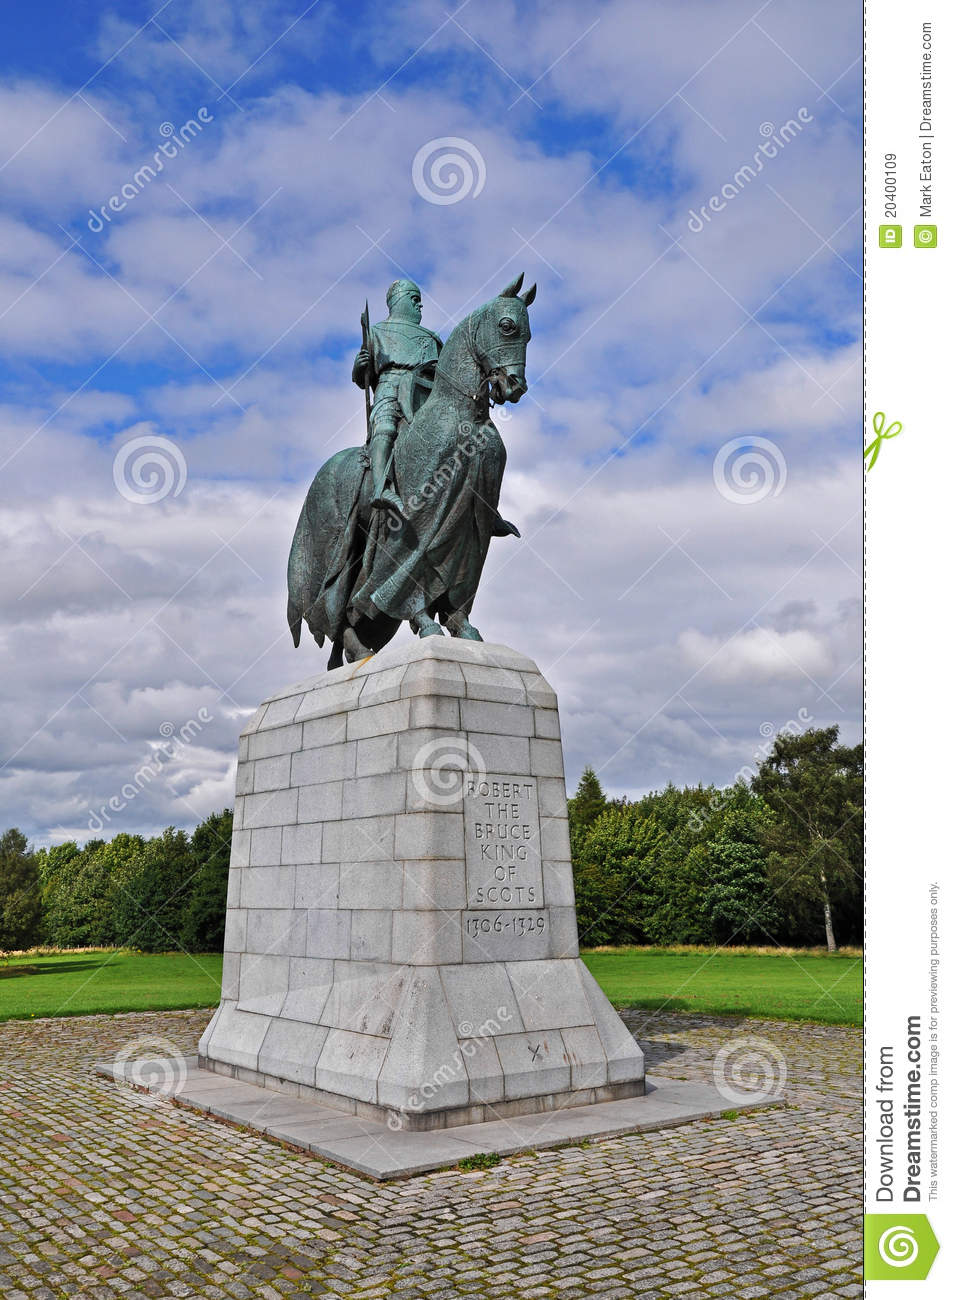 Robert the Bruce Monument at Bannockburn